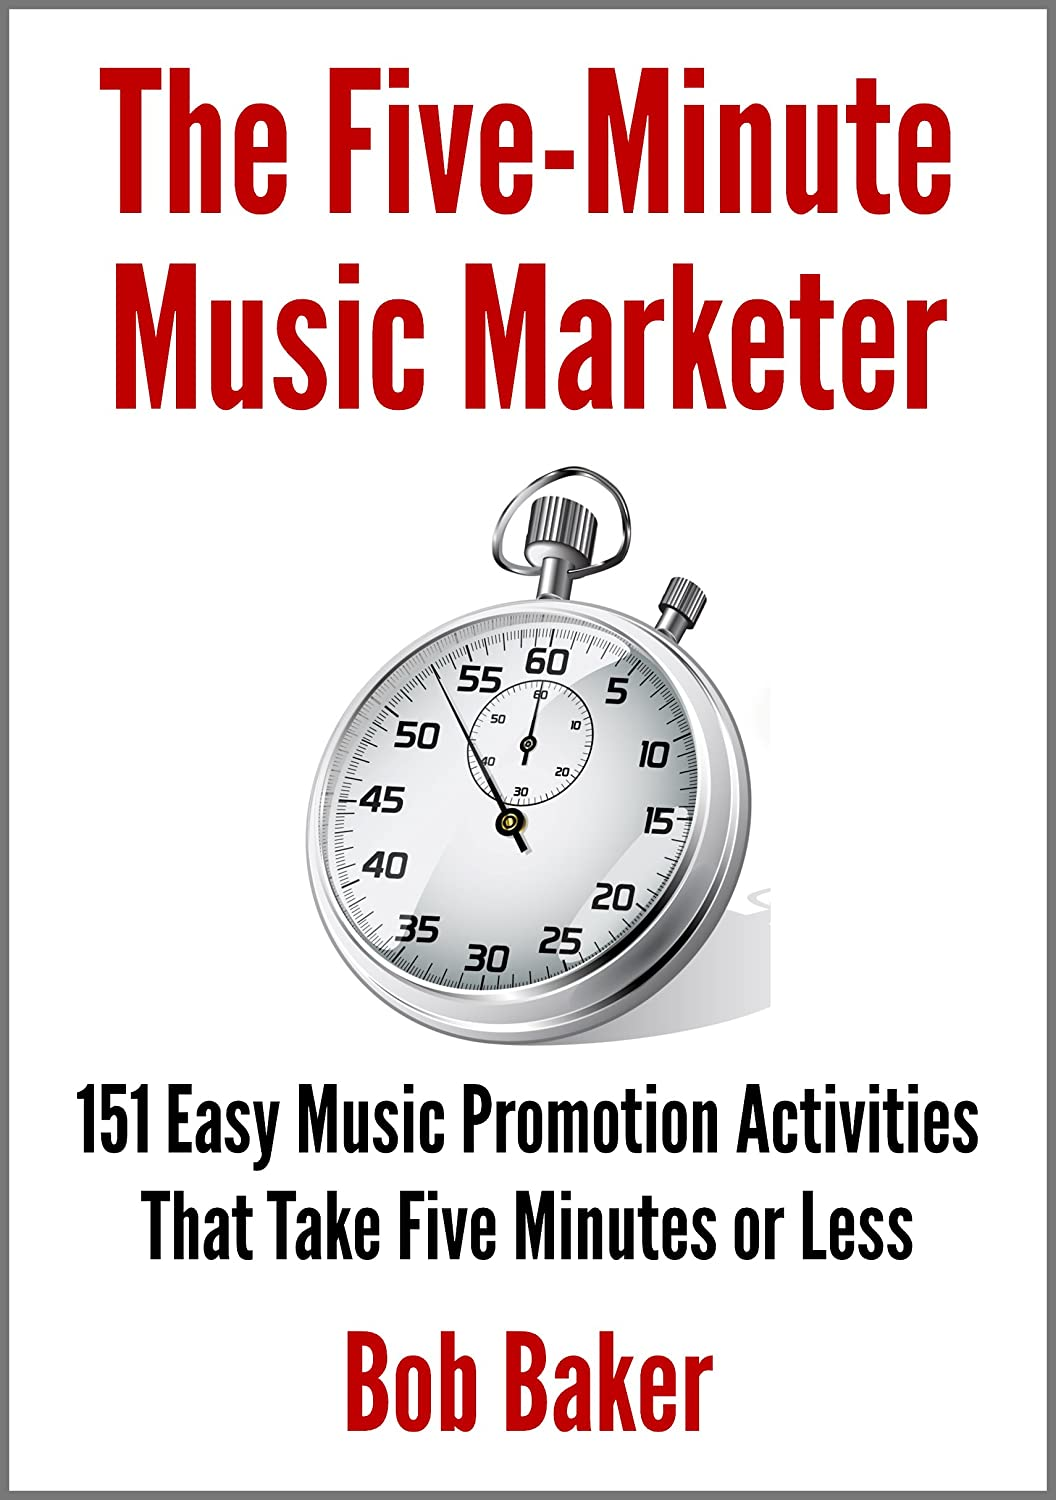 Five-Minute Music Marketer